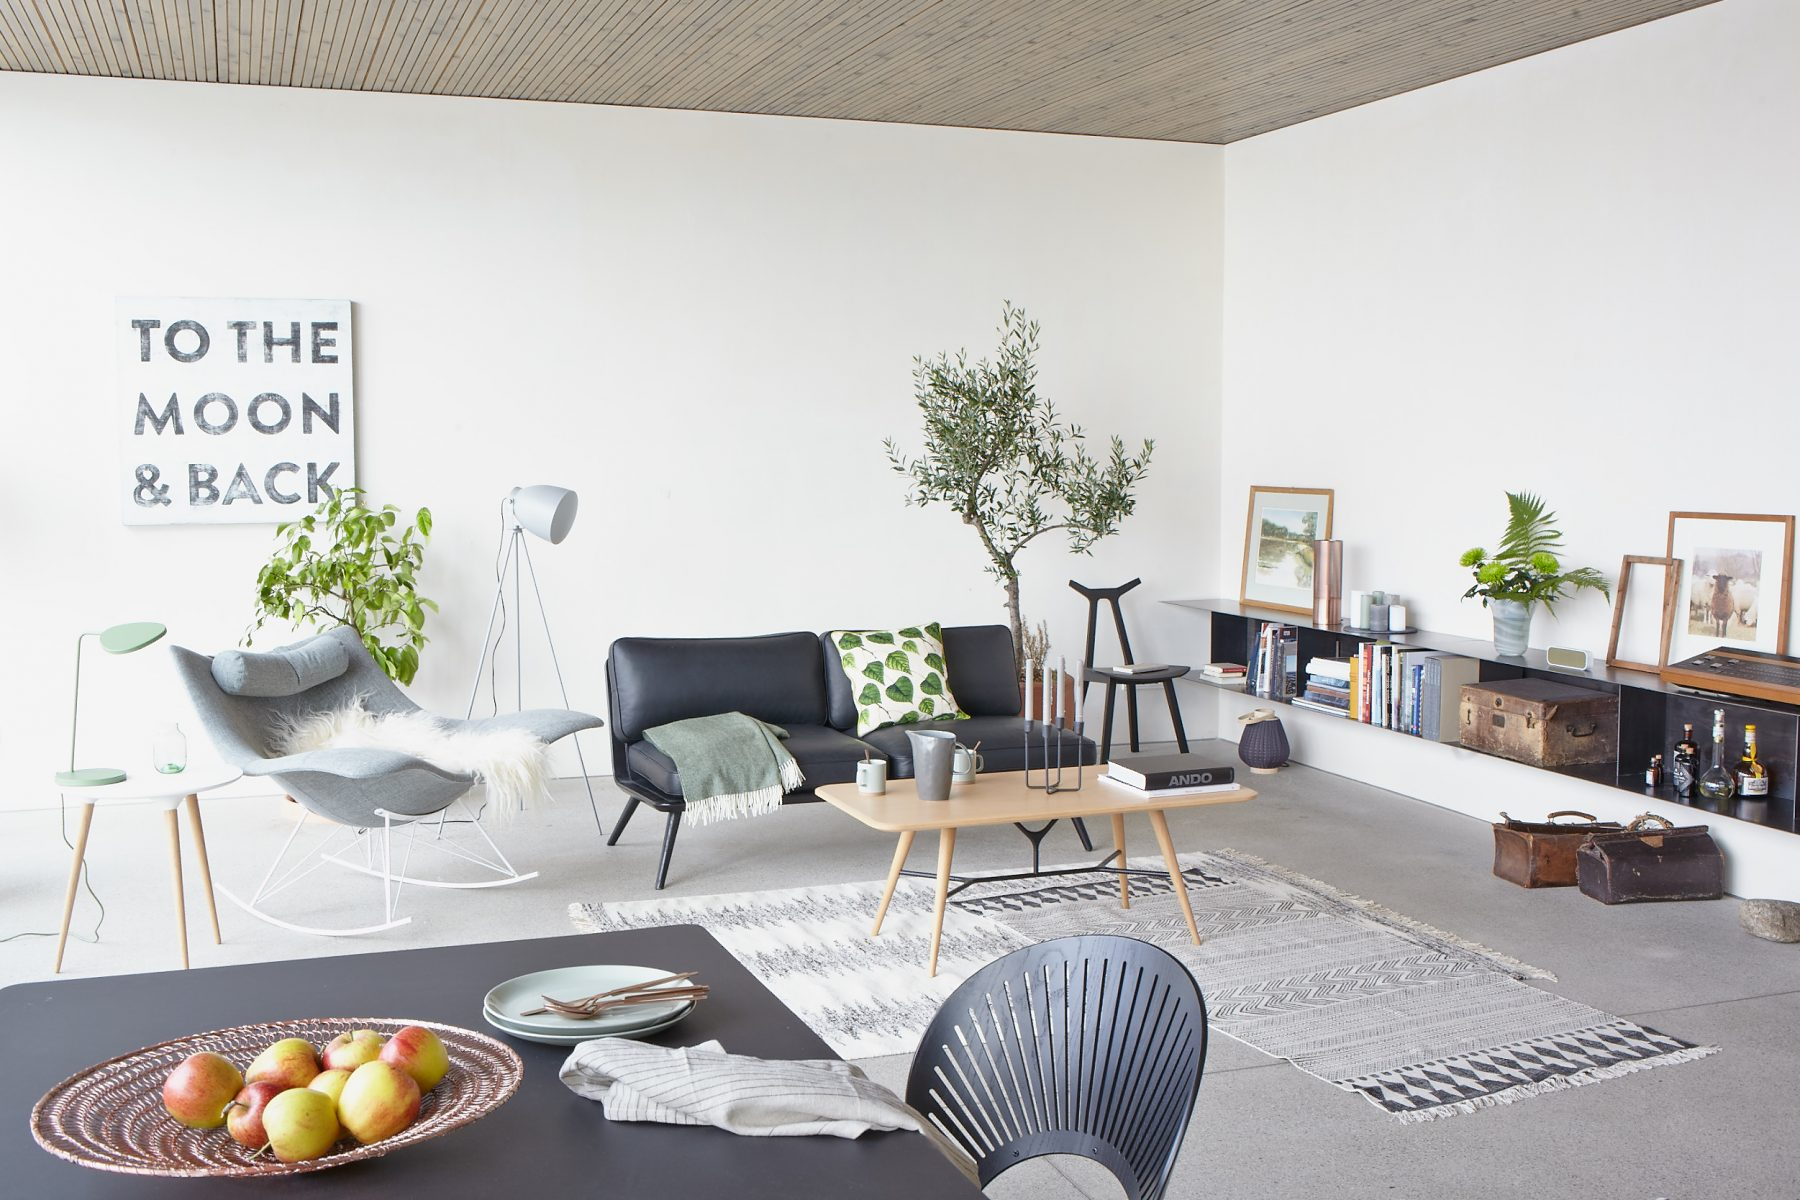 retro scandinavian interior